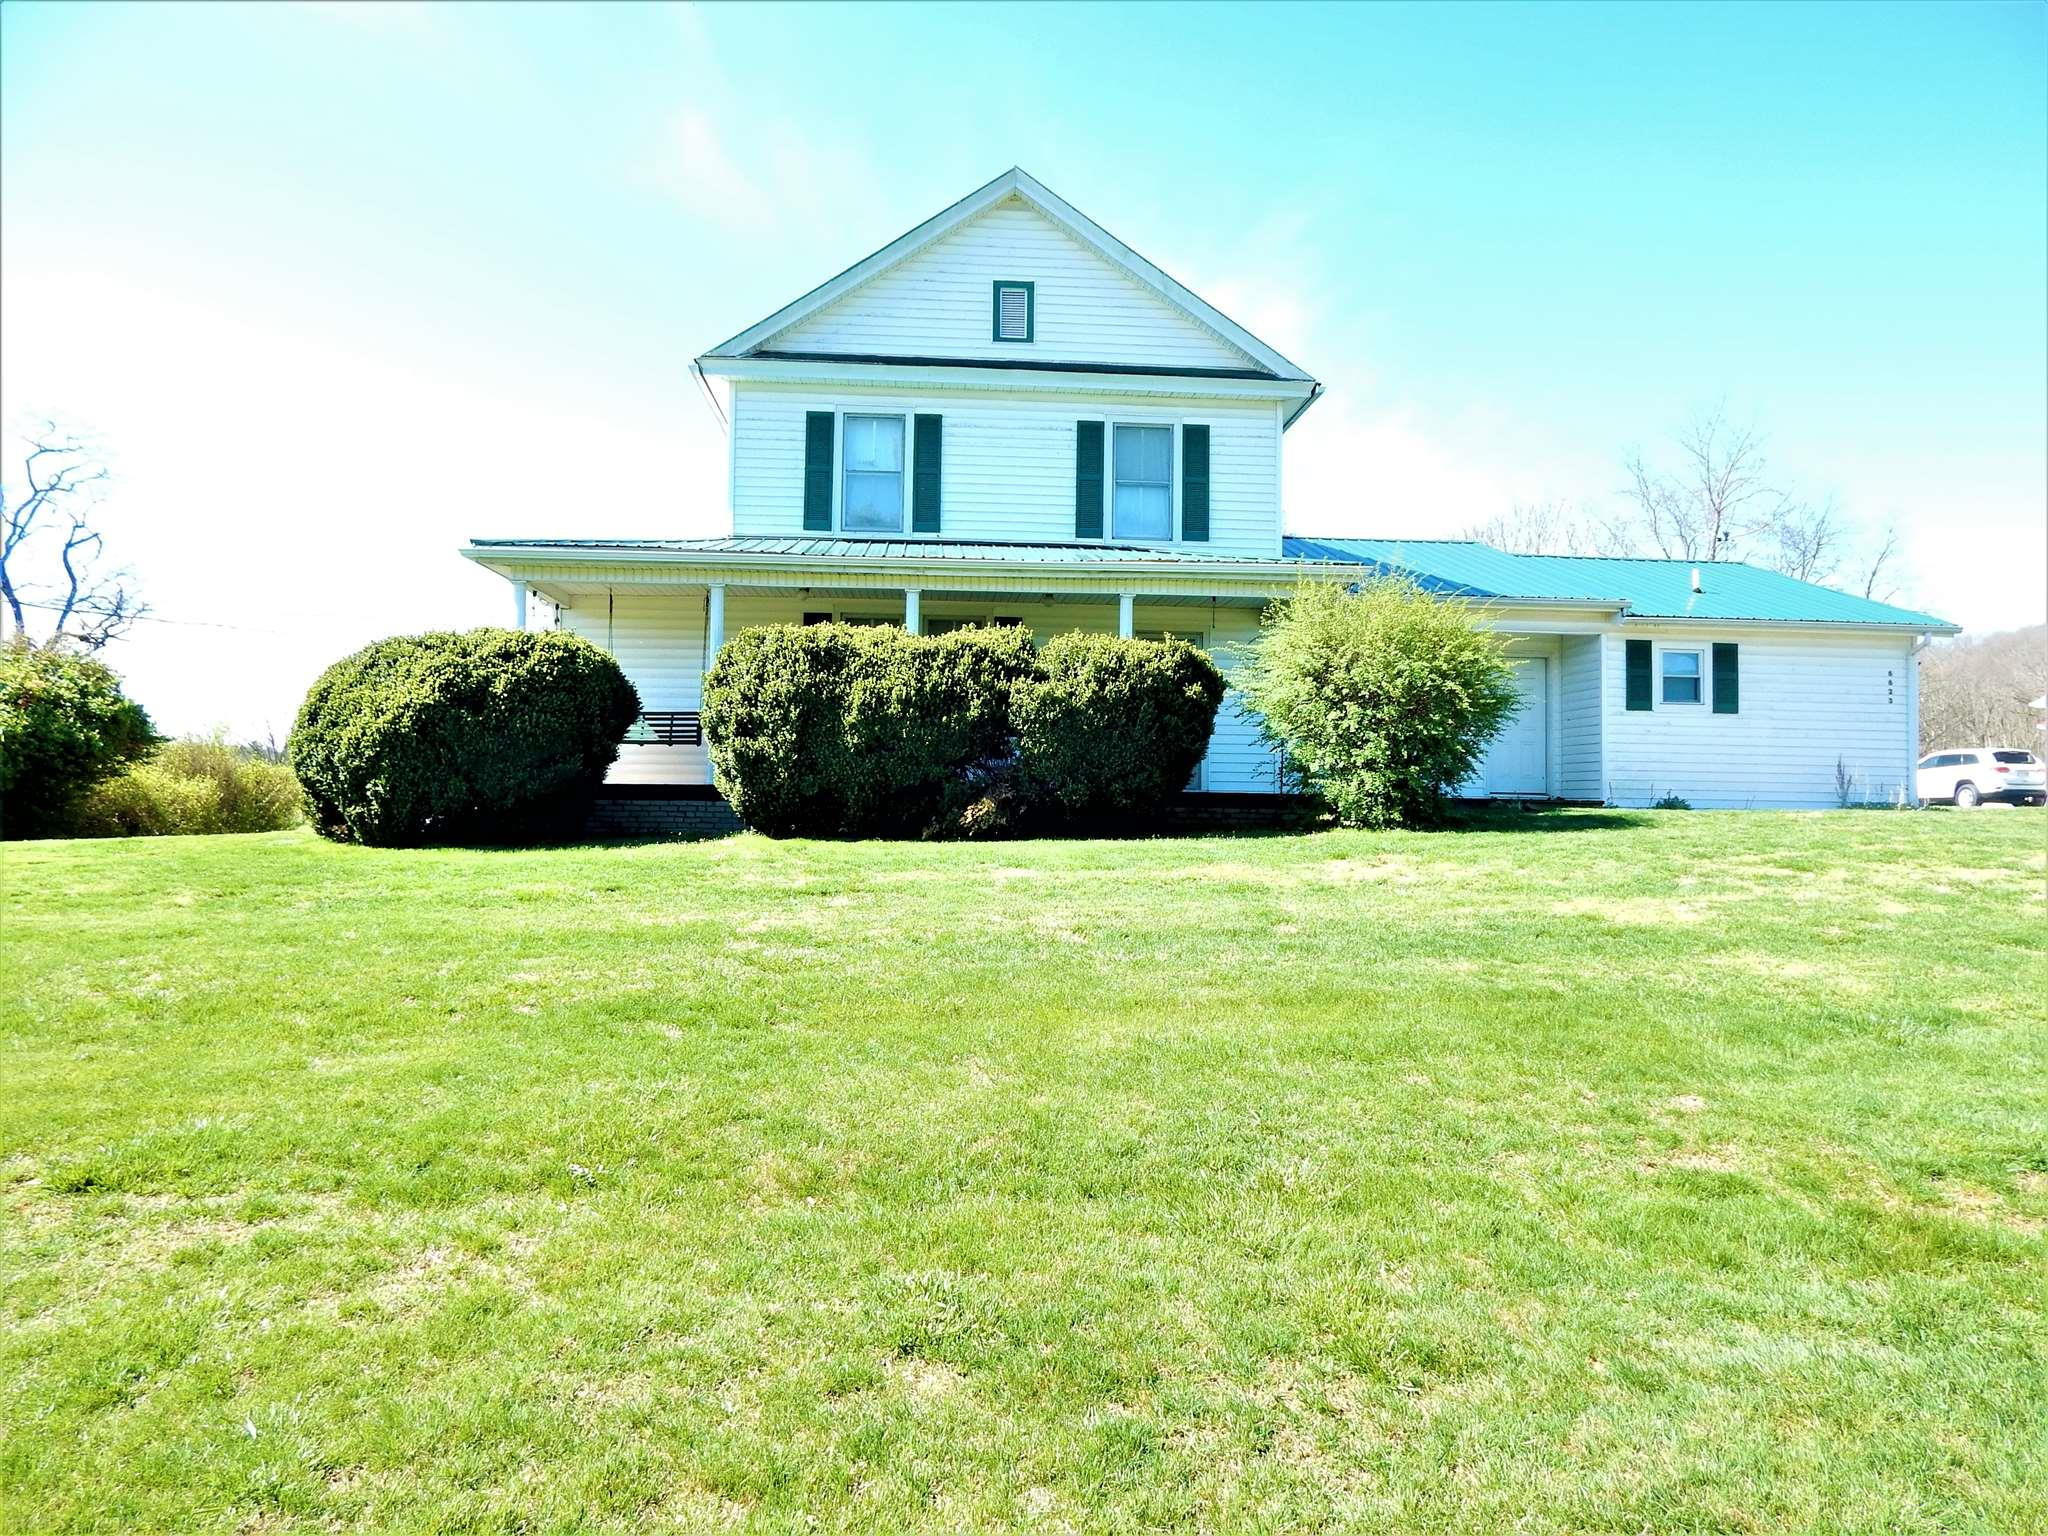 A unique opportunity awaits the lucky Buyer of this home. A five bedroom, twelve room home with beautiful pine flooring in upper-level bedrooms.  The room sizes and location provide a wonderful opportunity for creative use . . offices, hobby rooms, library . . . you name it and use it!  A detached garage, storage shed and outbuildings complement the multiple possible uses of this property.